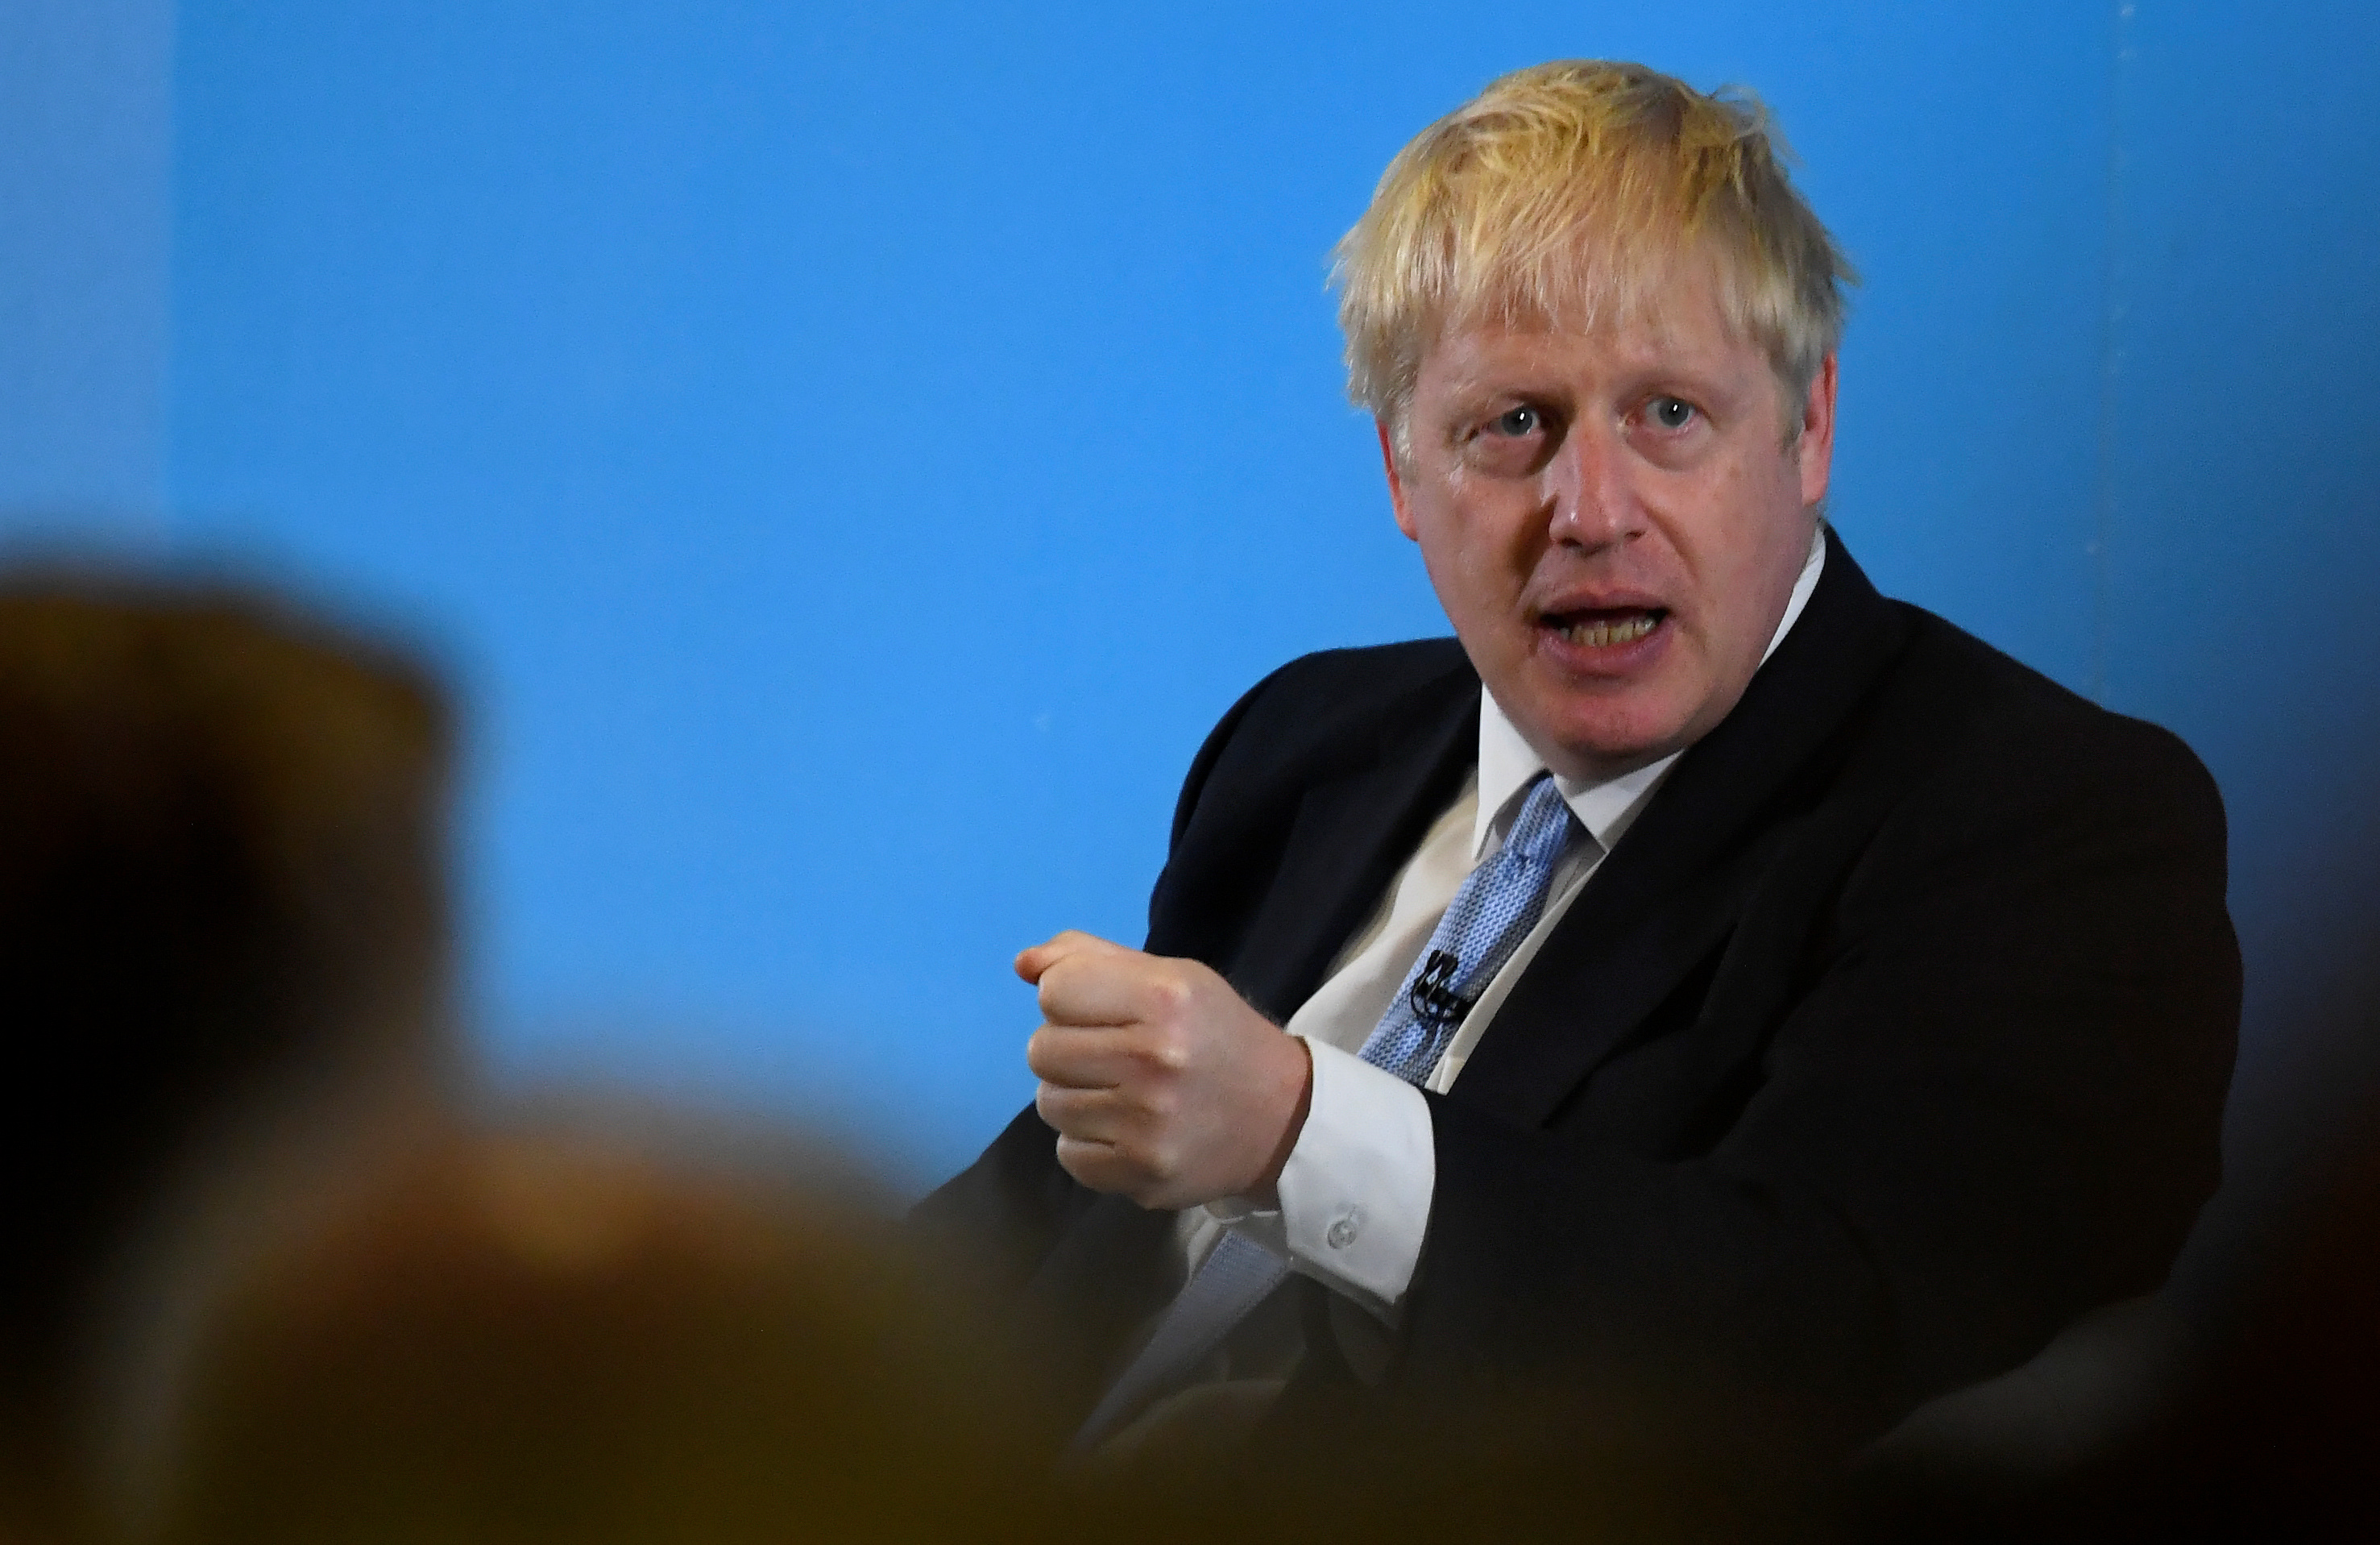 https://img1.s3wfg.com/web/img/images_uploaded/4/0/boris-johnson-ne-se-souvient-pas-d-avoir-insulte-les-francais.jpg